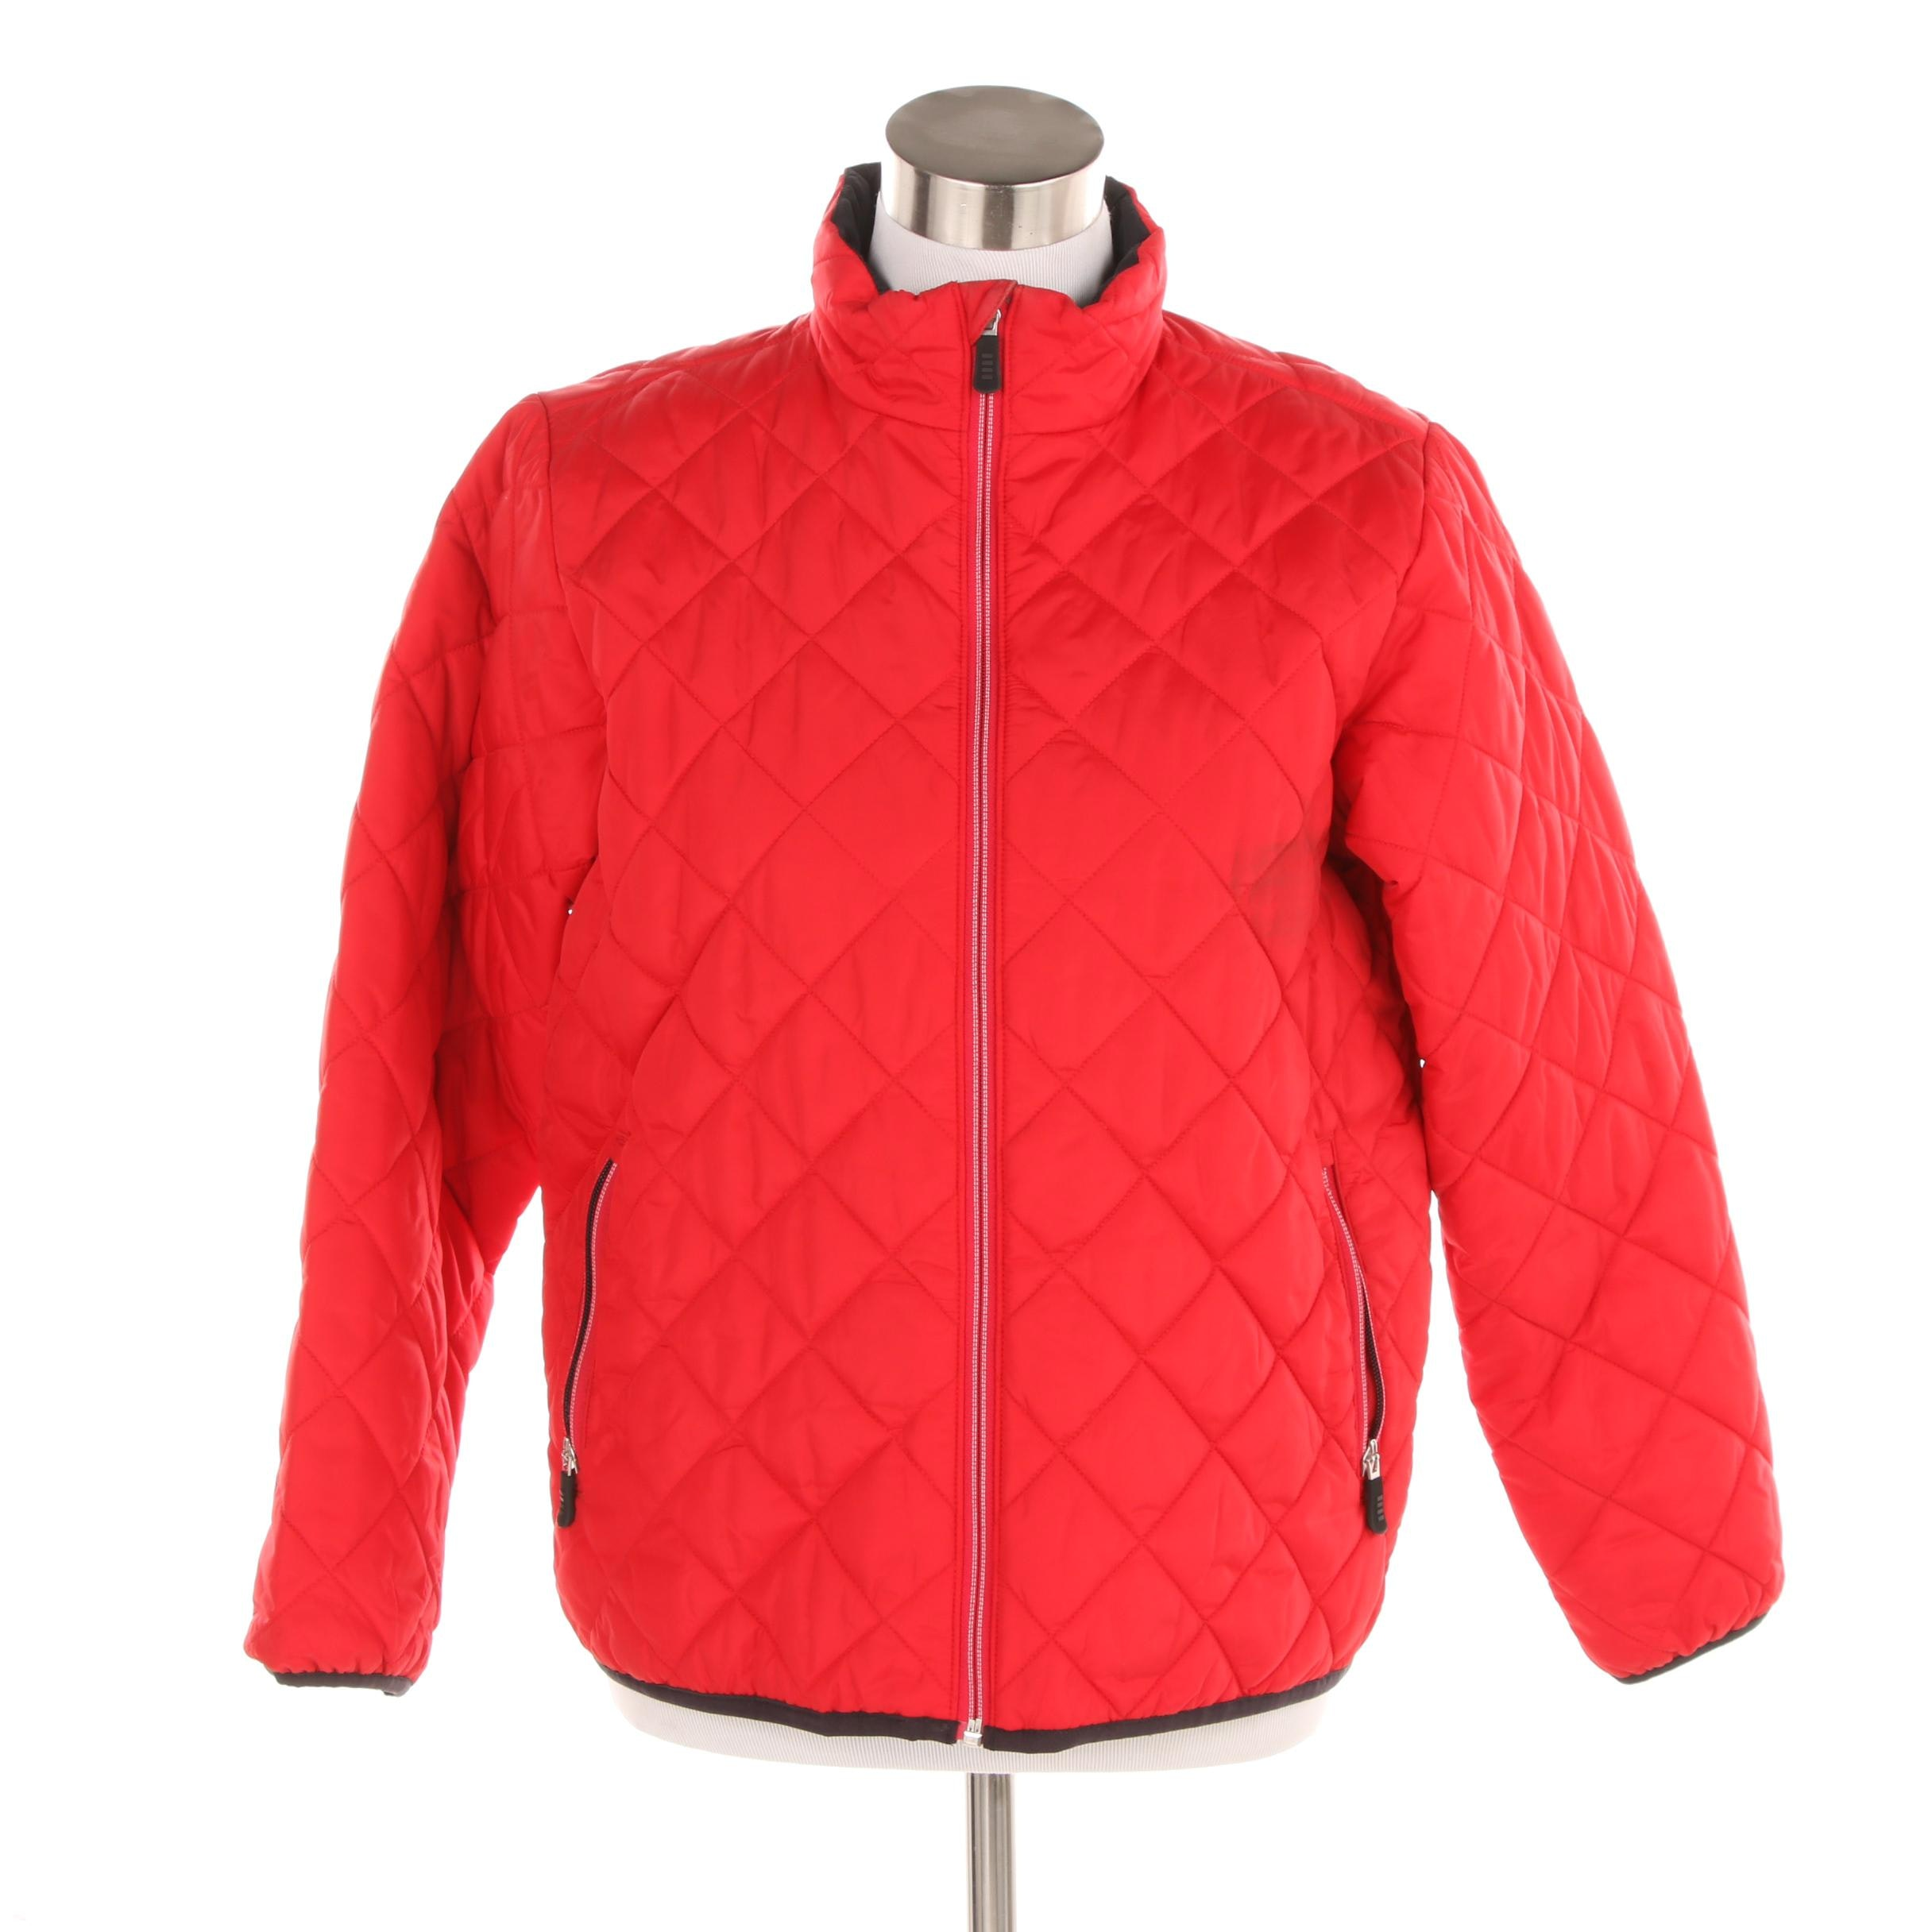 Women's Lands' End Red Quilted Jacket